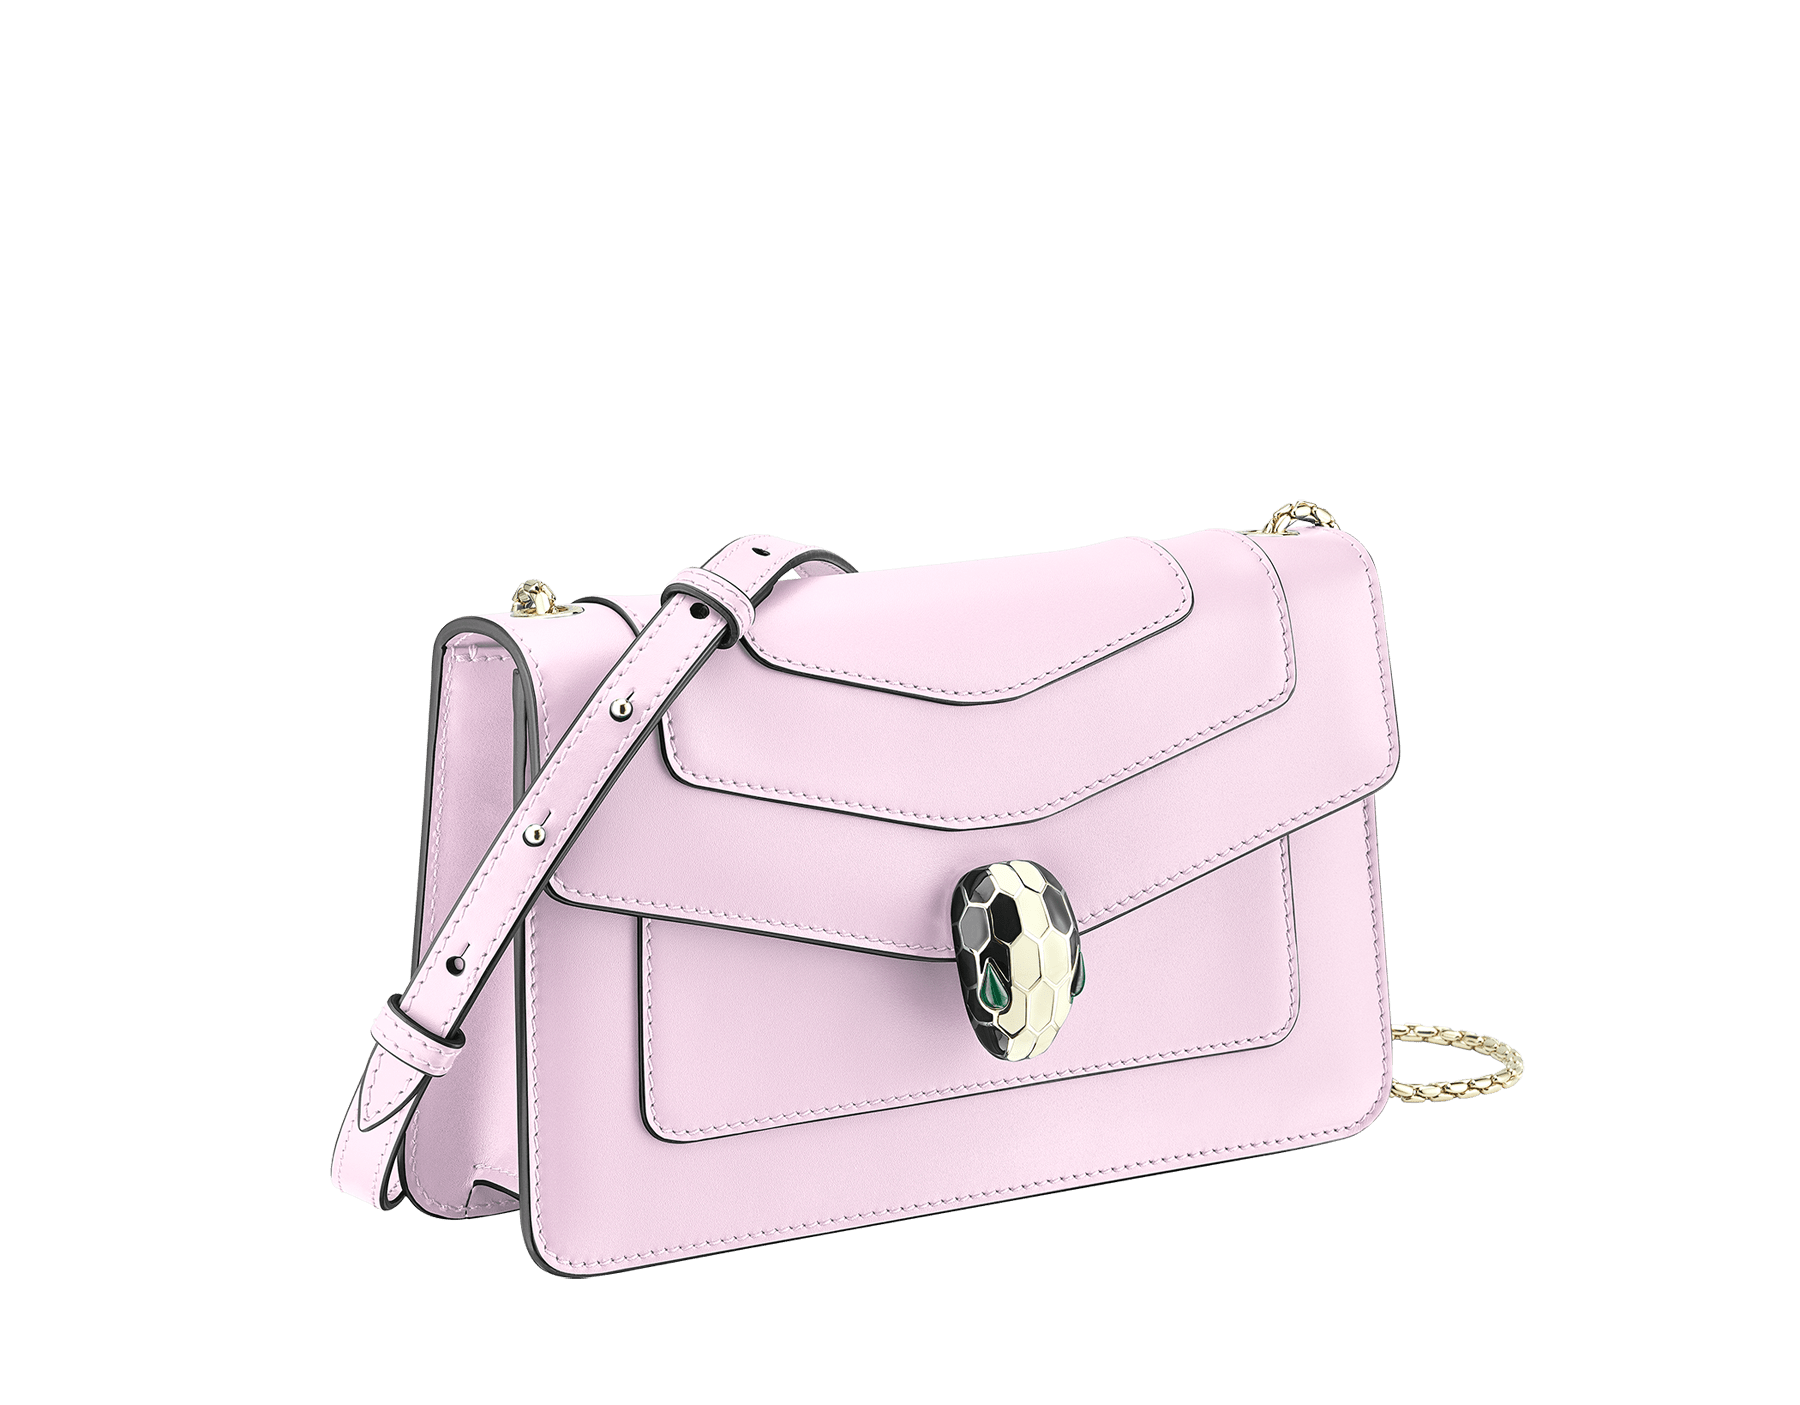 Serpenti Forever crossbody bag in sea star coral smooth calf leather. Snakehead closure in light gold plated brass decorated with black and white enamel, and green malachite eyes. 625-BCLc image 2